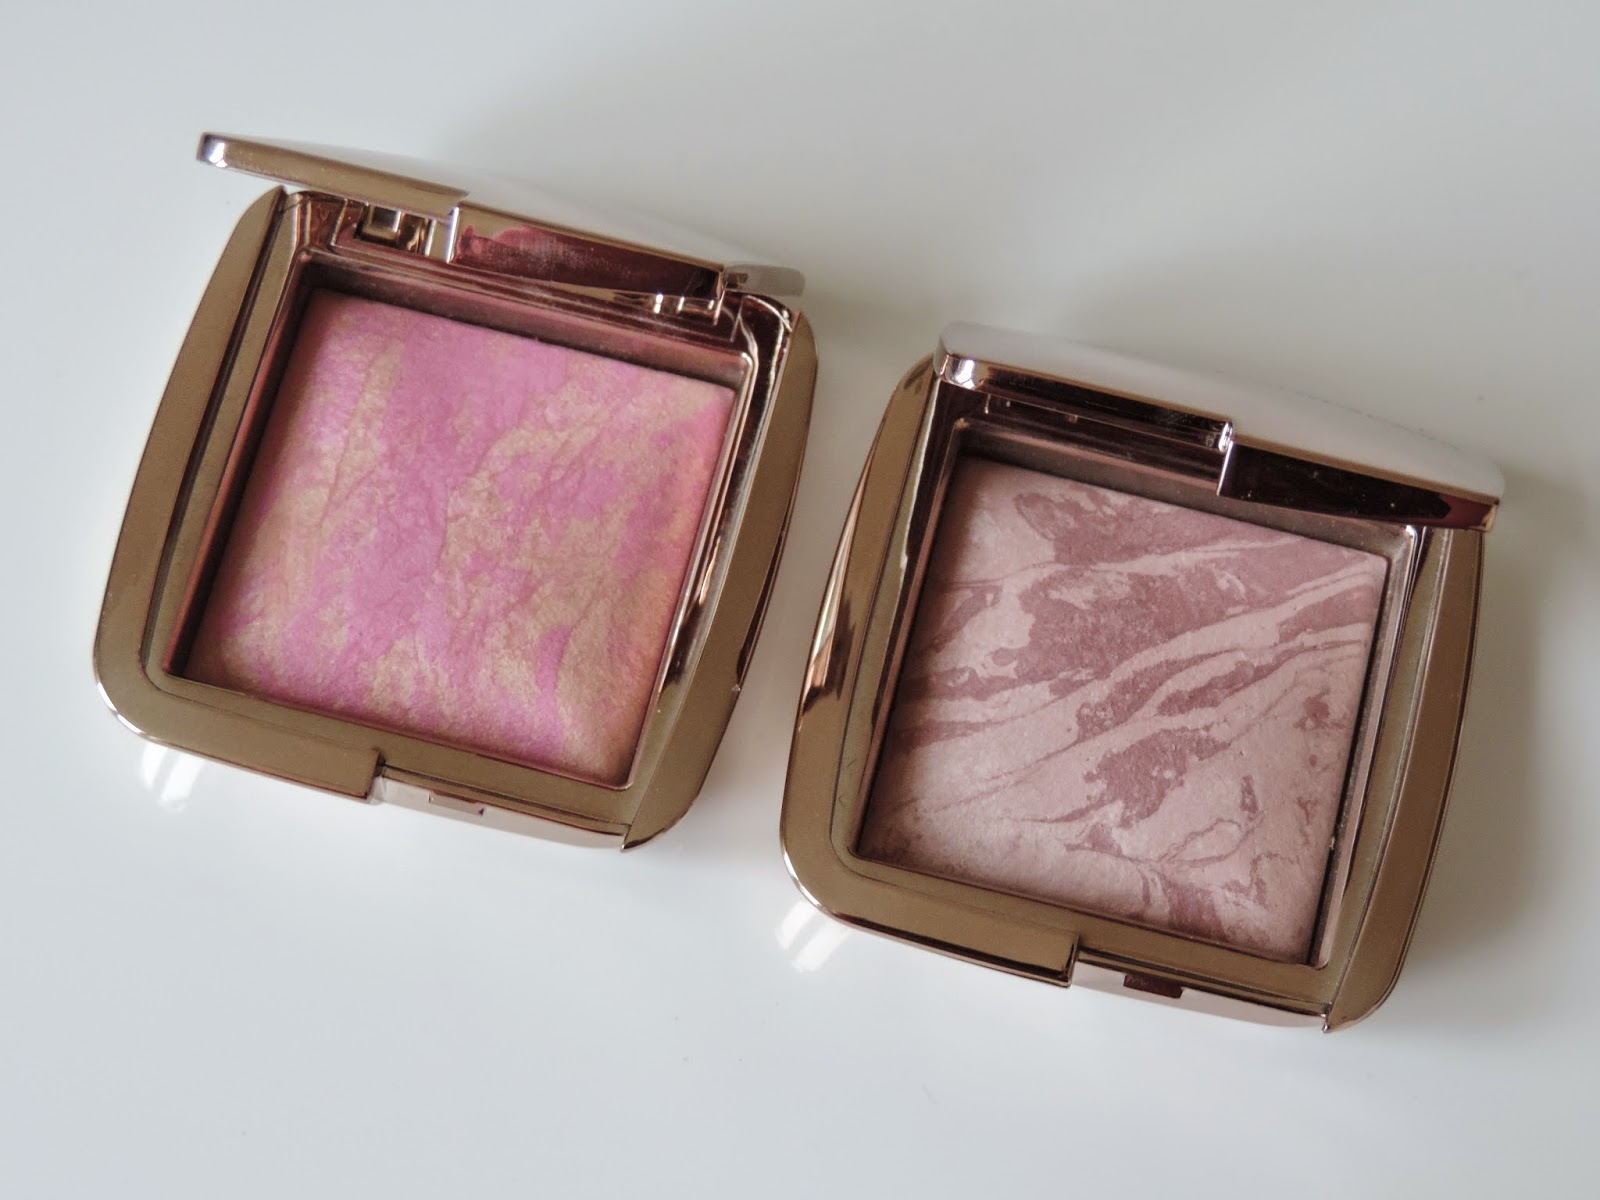 Hourglass Ambient Lighting Blush (from left): Radiant Magenta, Mood Exposure